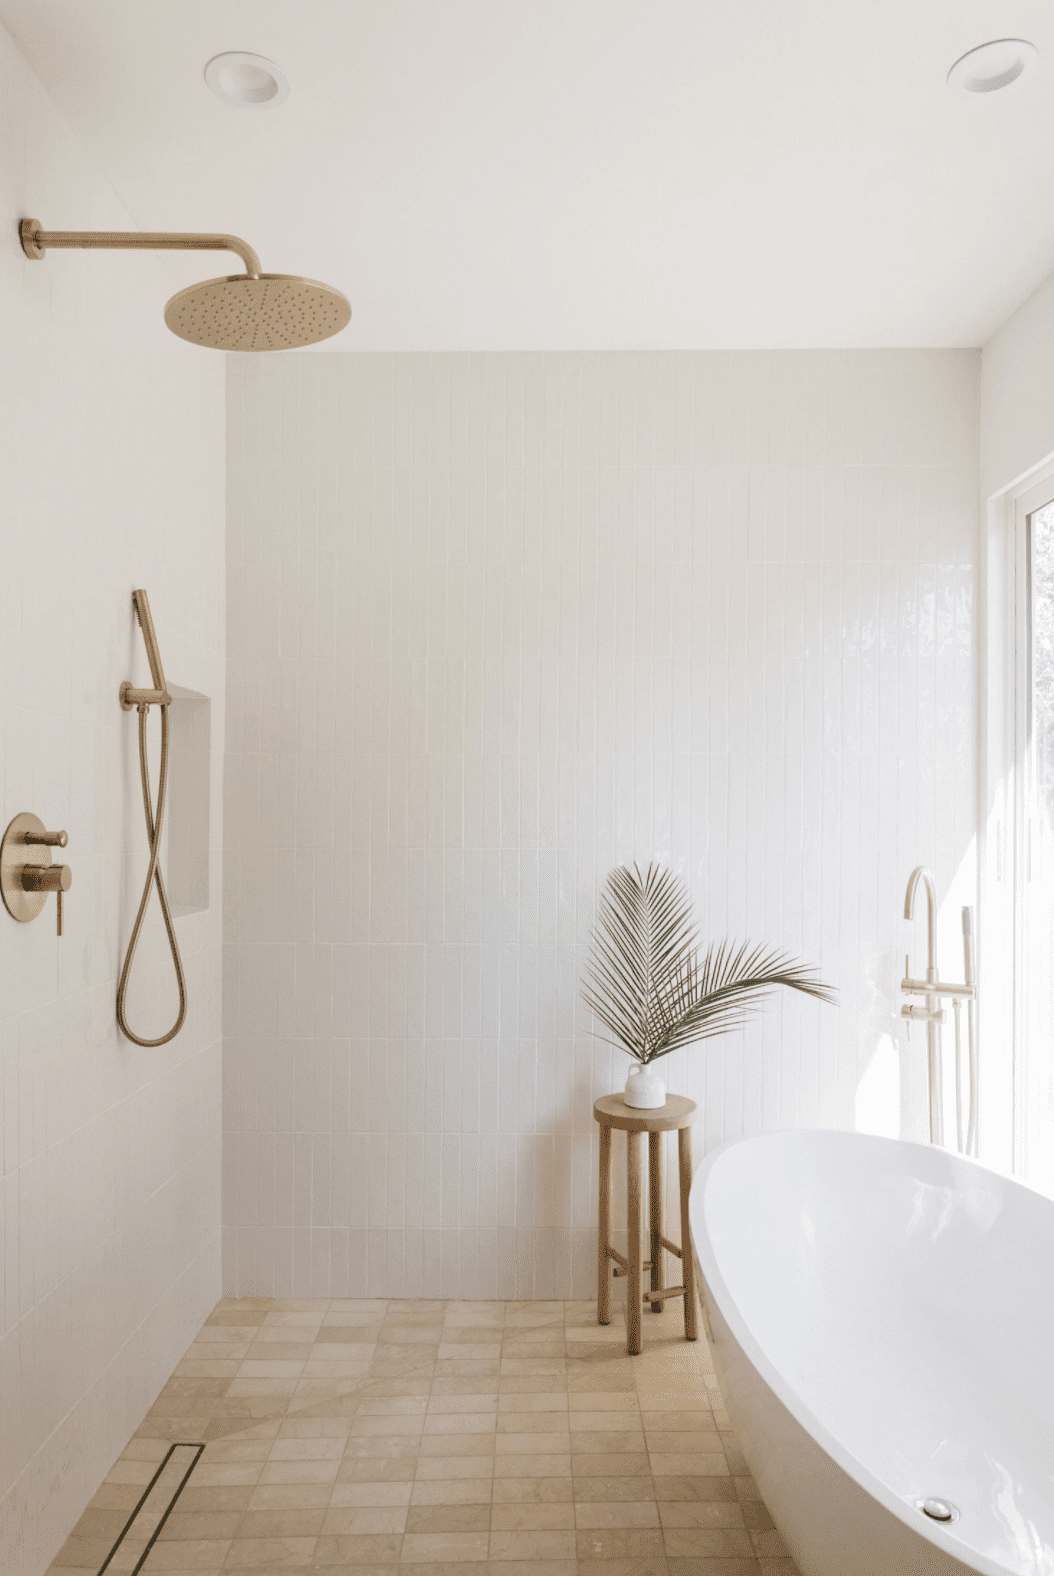 A large shower with a freestanding tub inside it